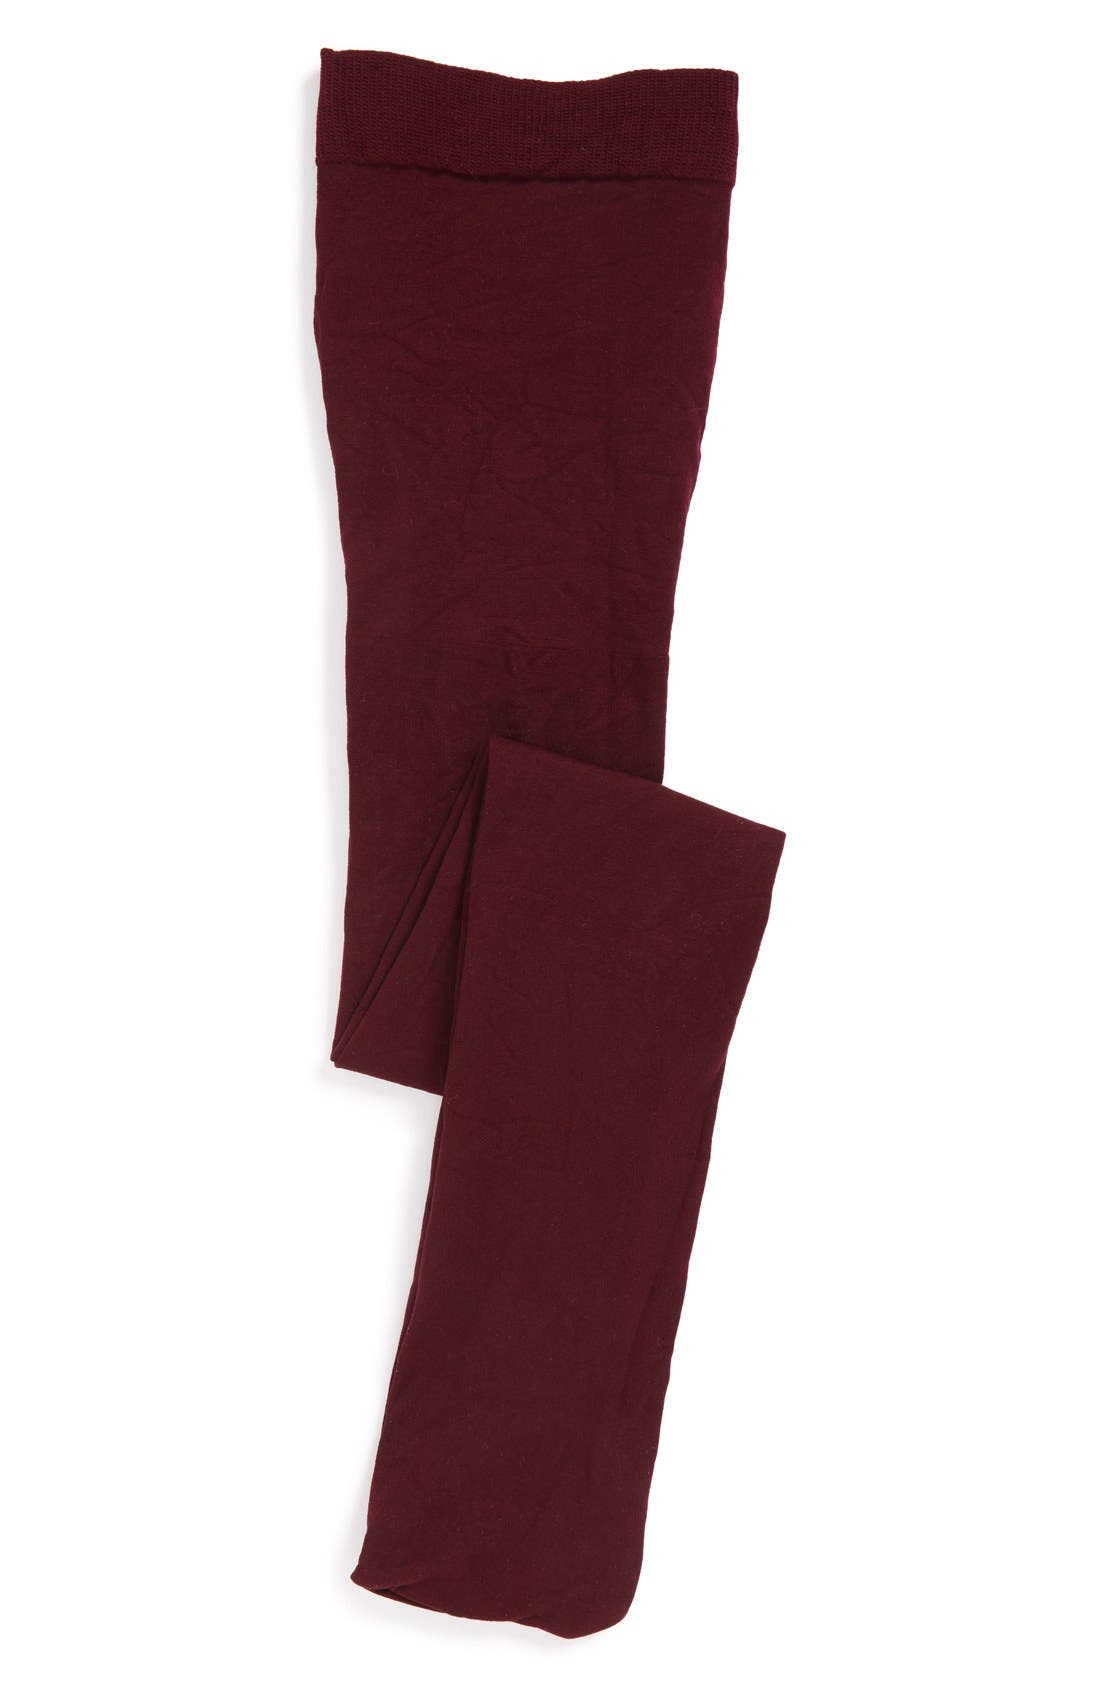 Alternate Image 1 Selected - Ruby & Bloom 'So Fine' Microfiber Tights (Toddler Girls, Little Girls & Big Girls)